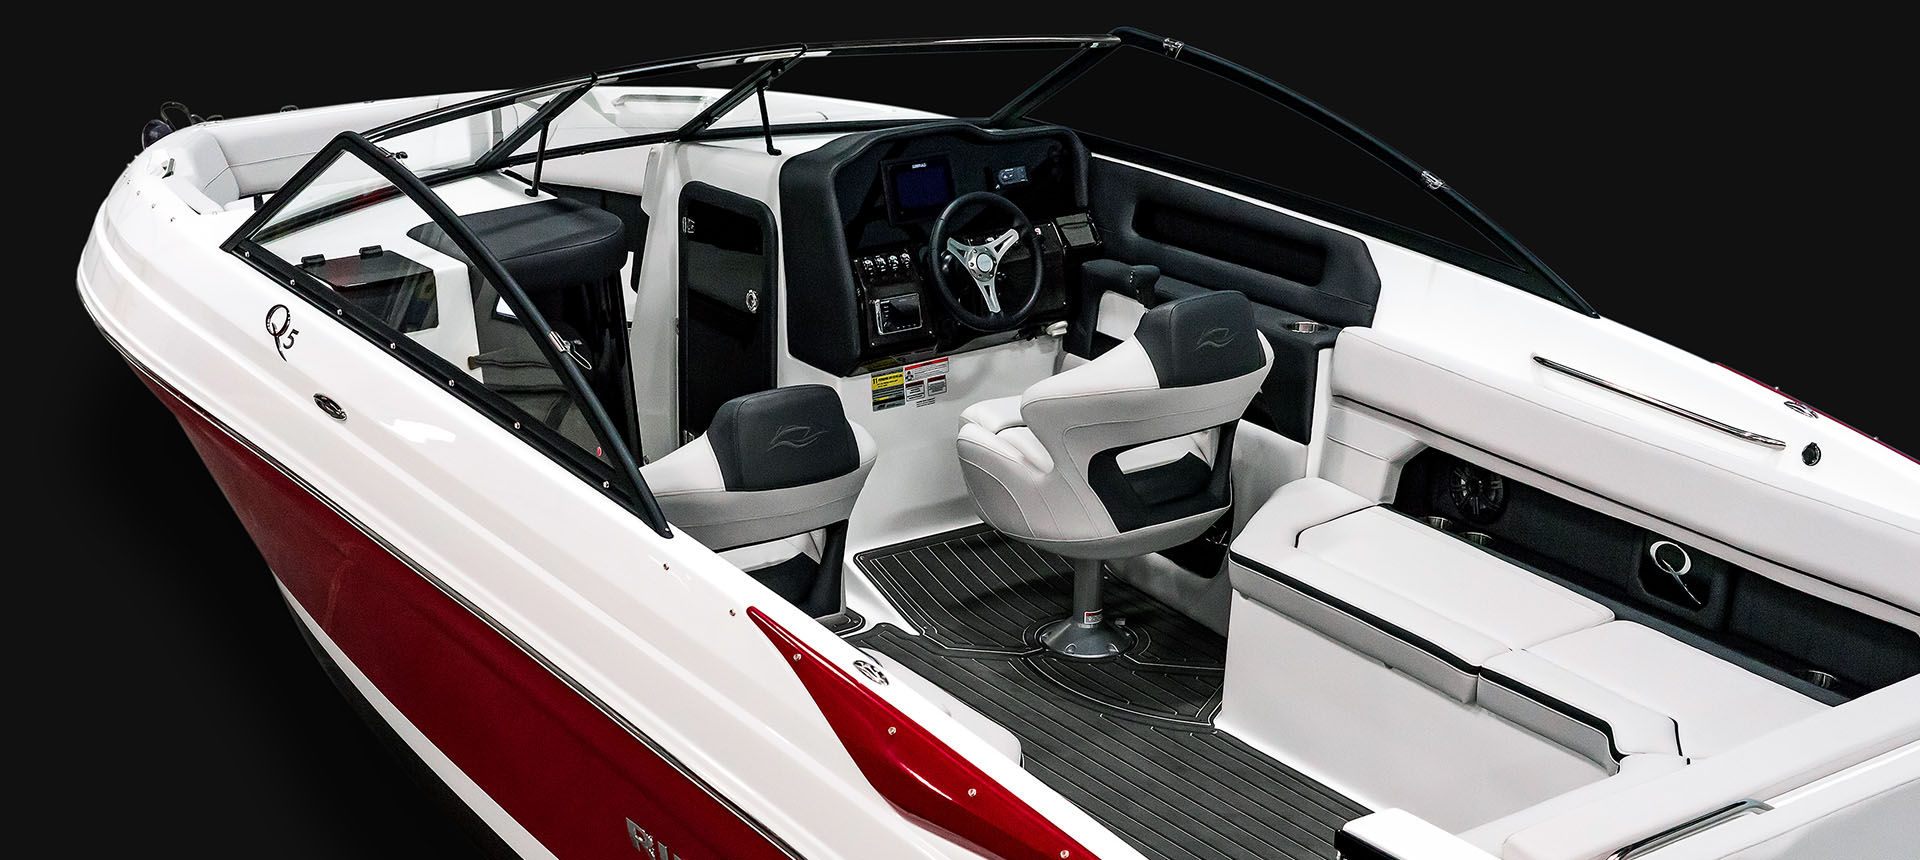 Pic of Q5 Outboard interior